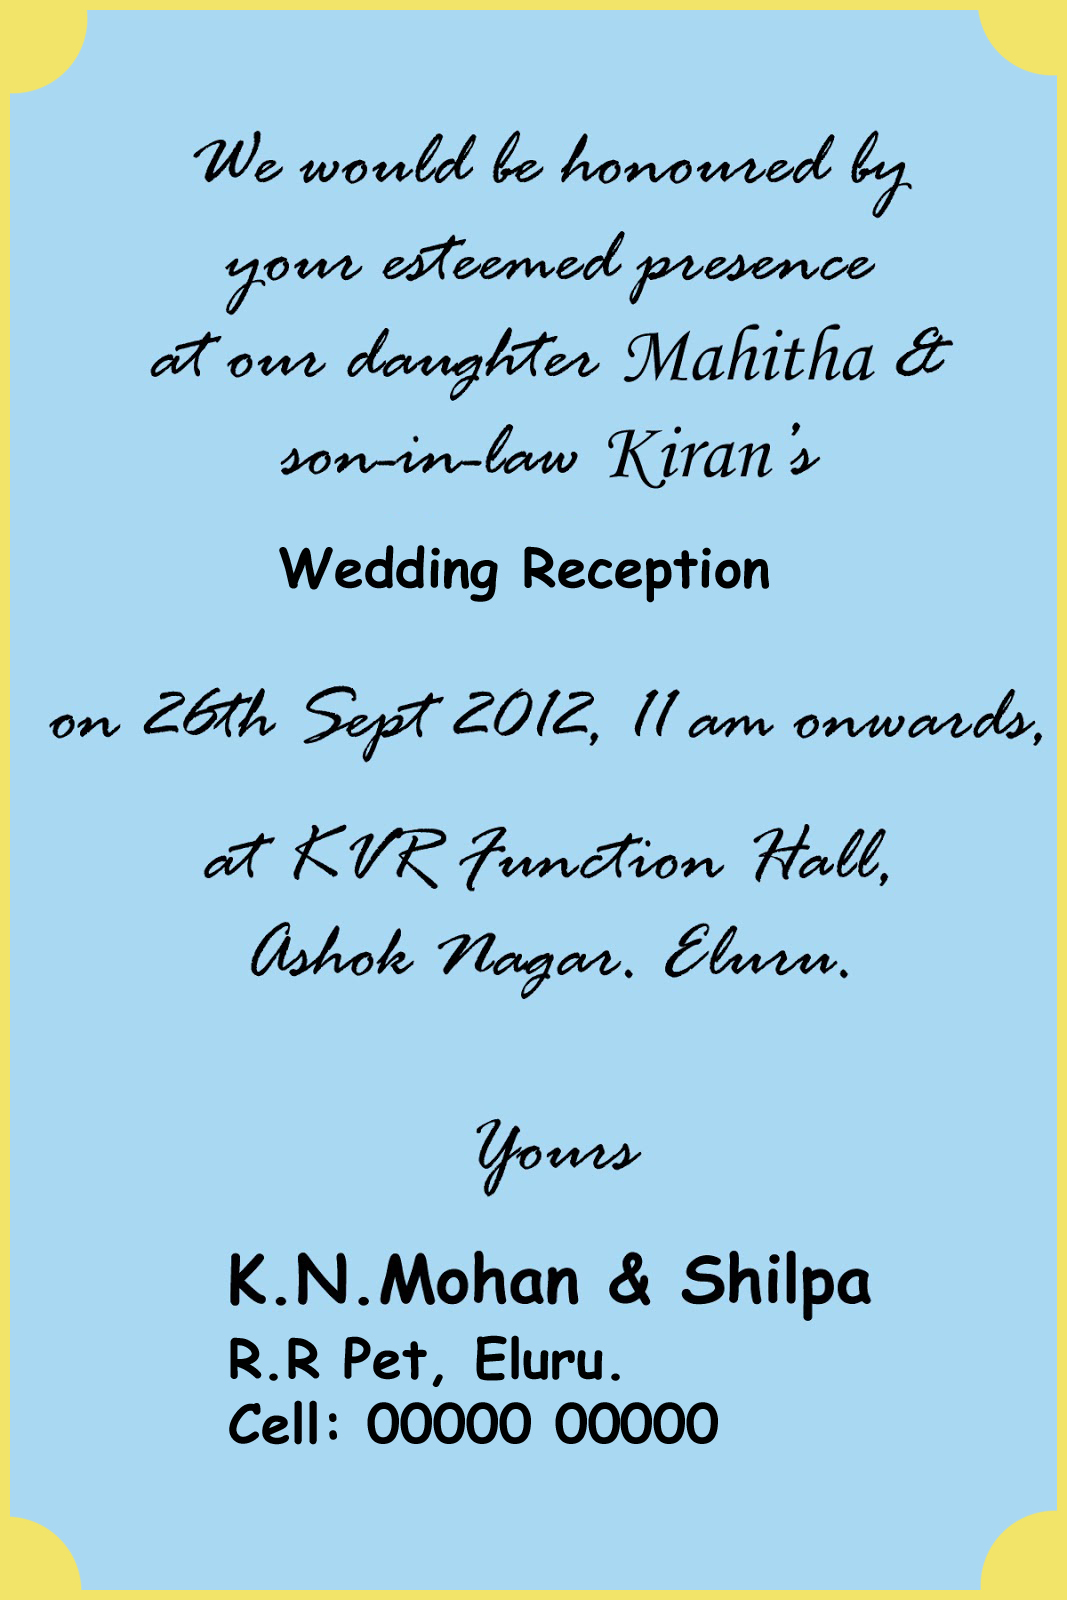 Hindu Wedding Card Matter In English For Friends - Unique Wedding Ideas